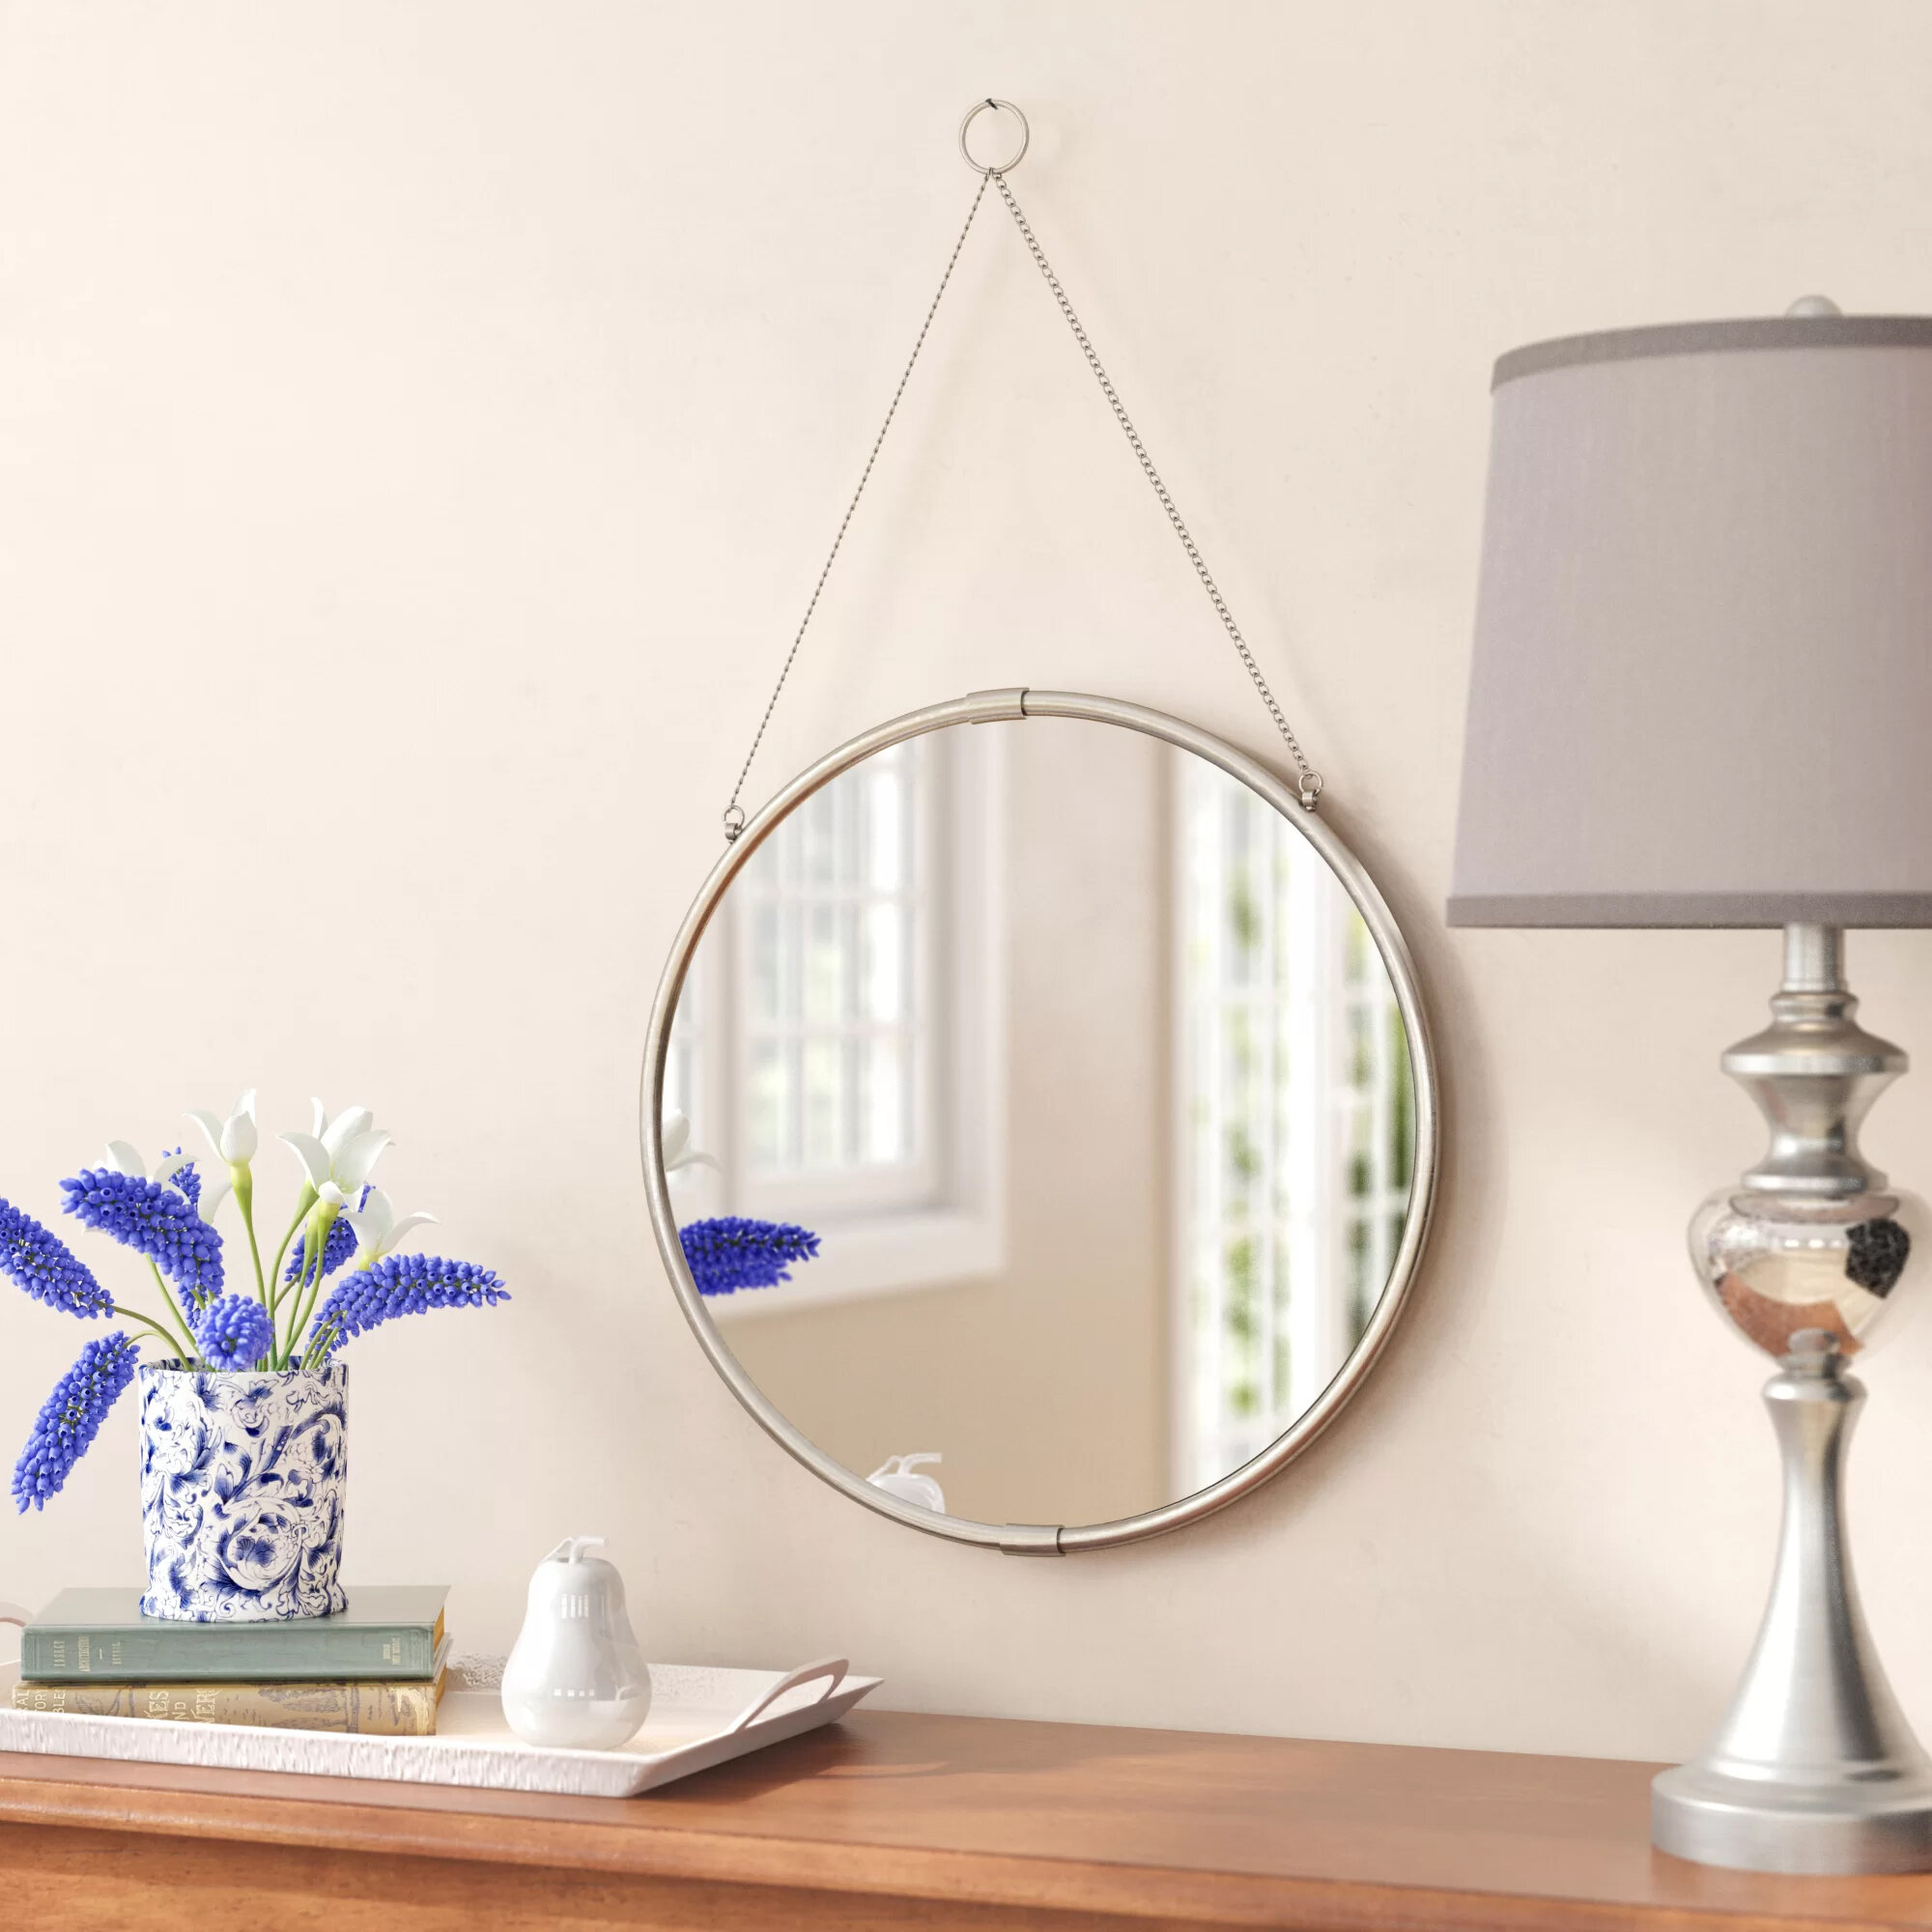 Brea Decorative Round Hanging Modern Contemporary Wall Mirror